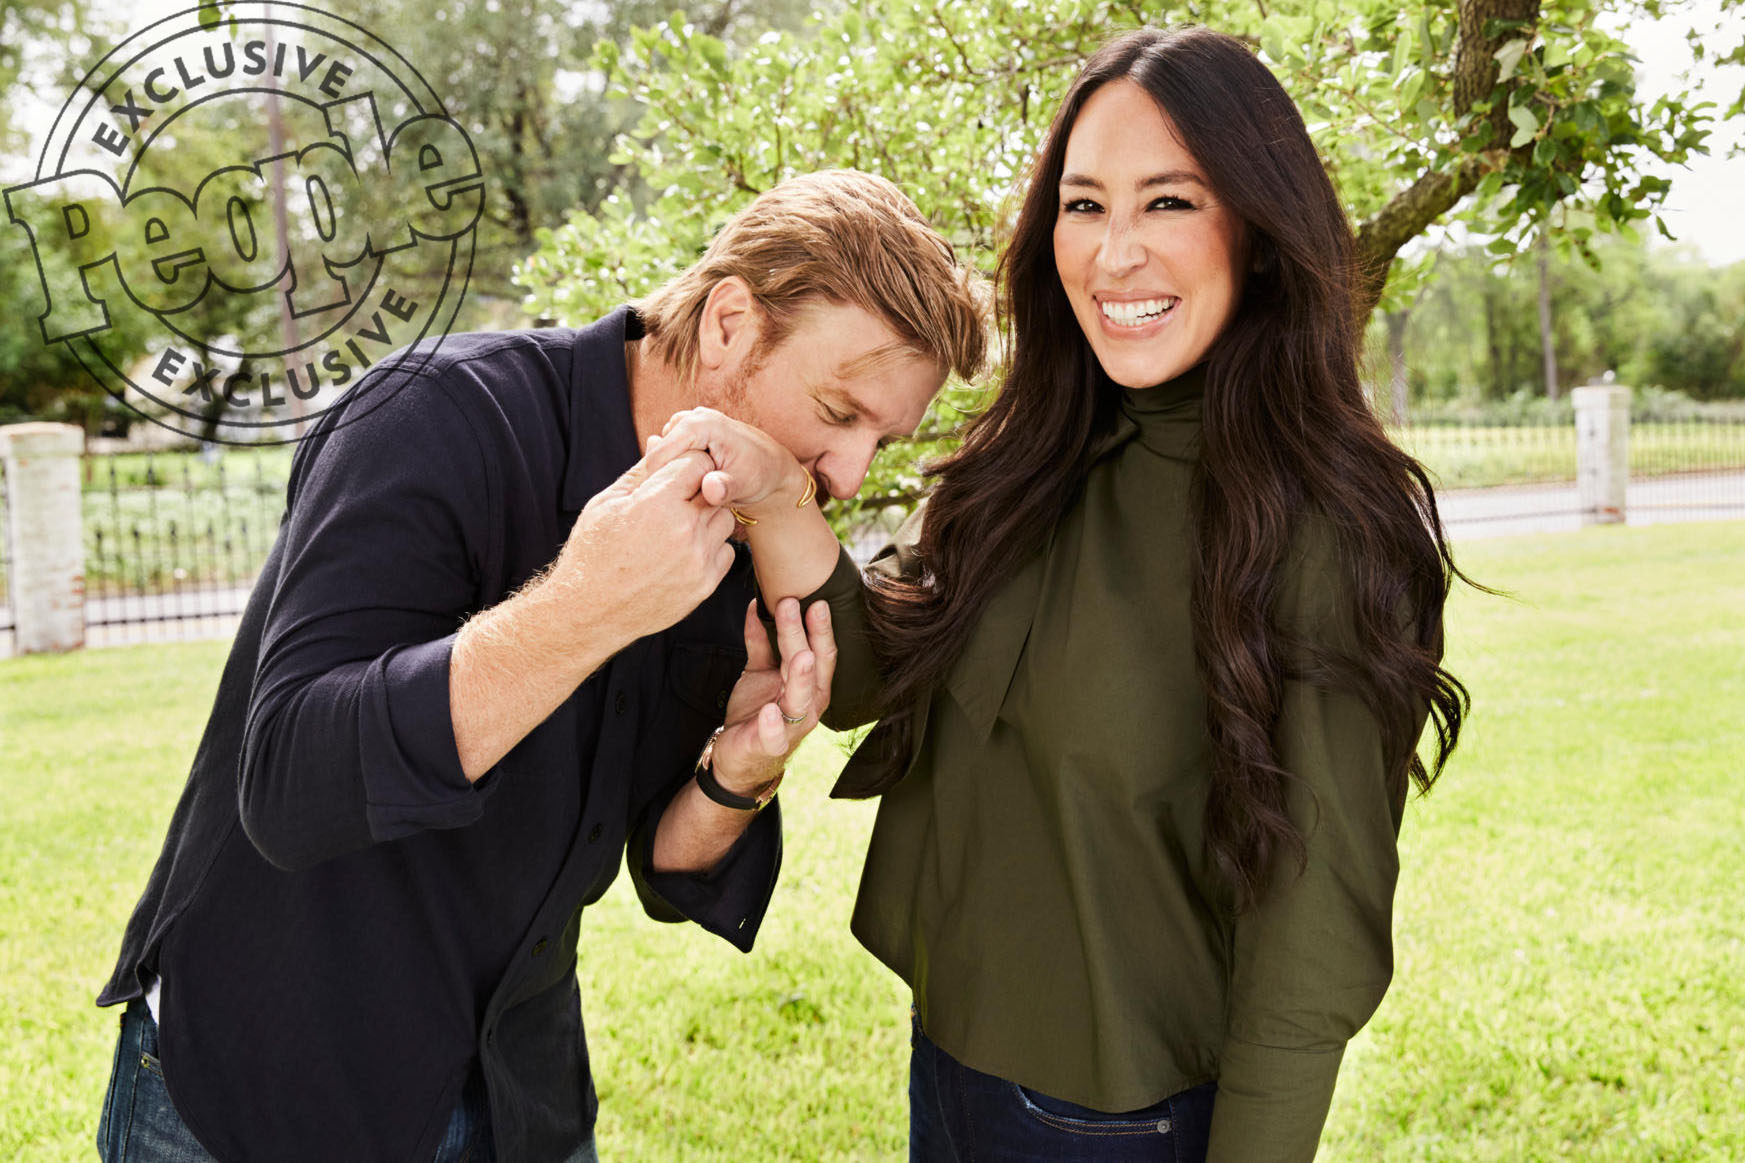 Chip Gaines on He and Wife Joanna Having Another Baby: 'Don't Be Surprised If No. 6 Is in the Cards!' gaines31